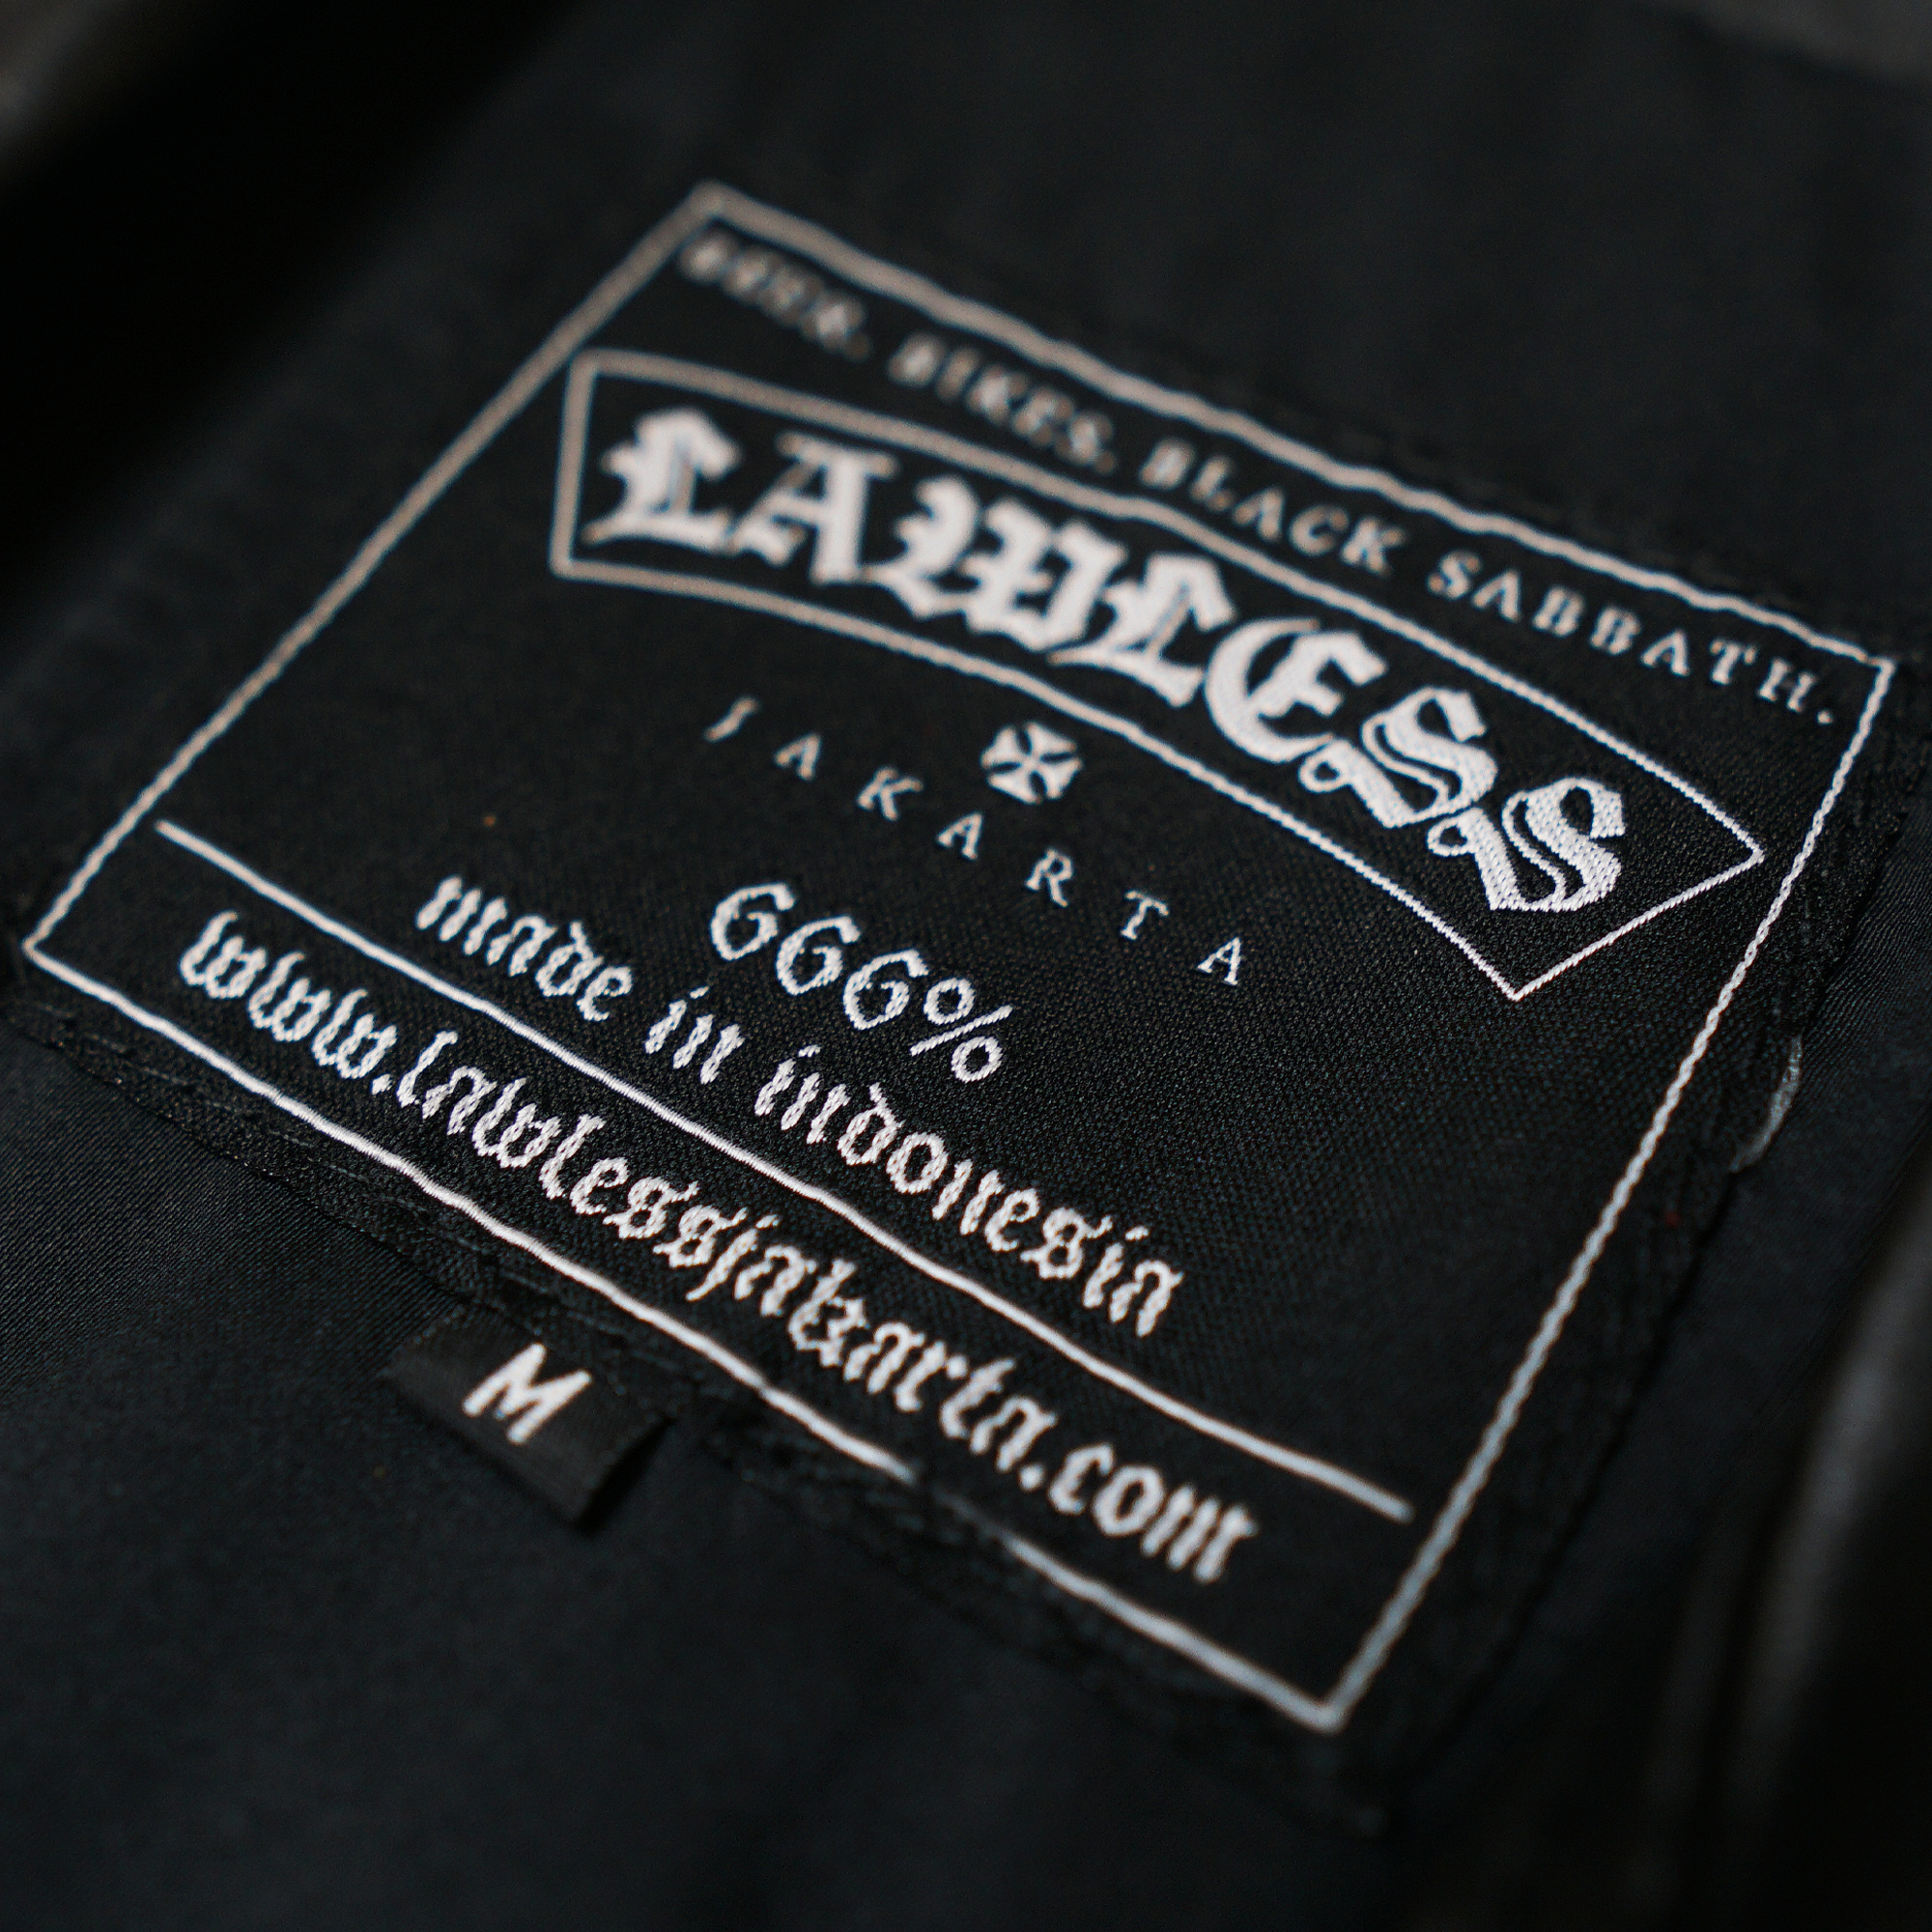 lawless_leather_jacket_detail_2